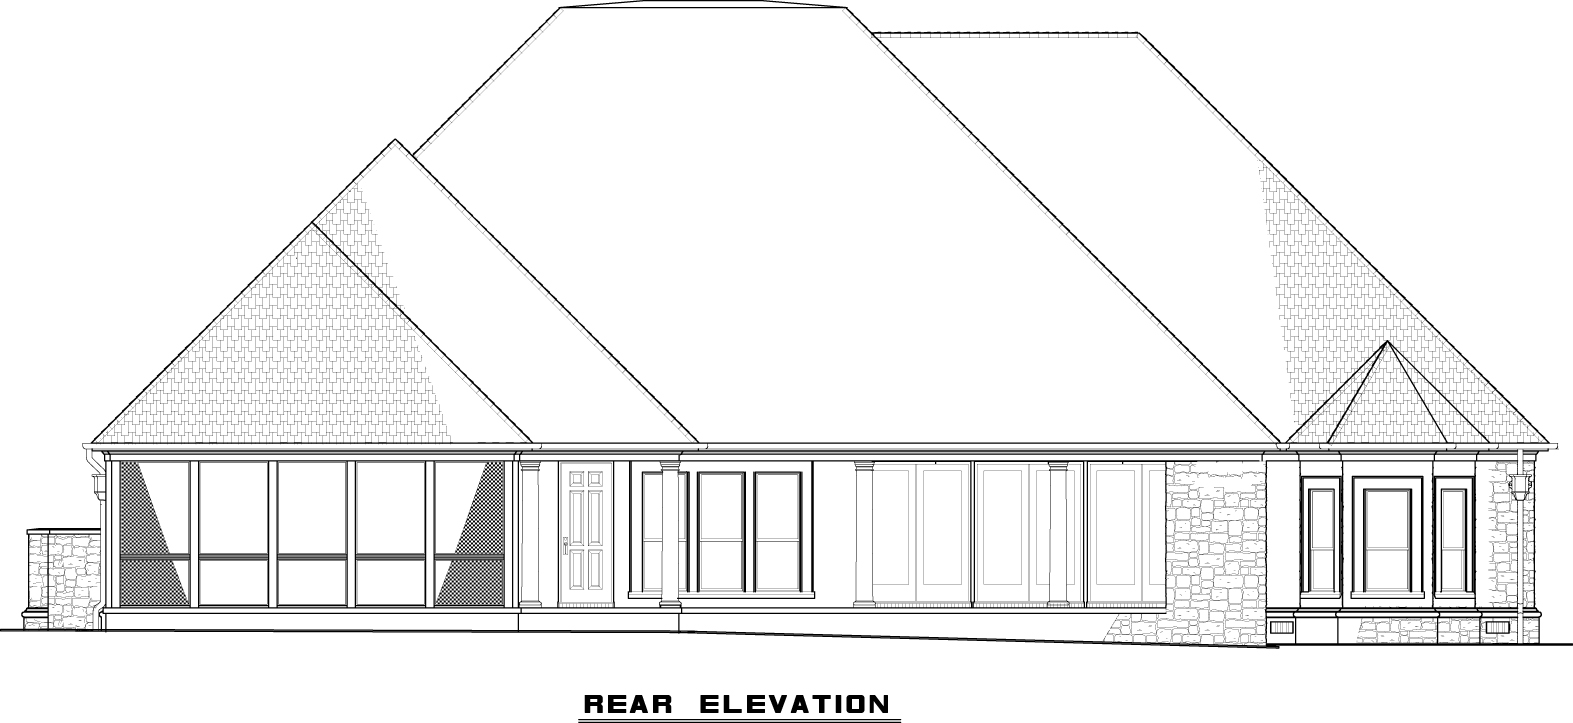 MEN 5050-Rear Elevation